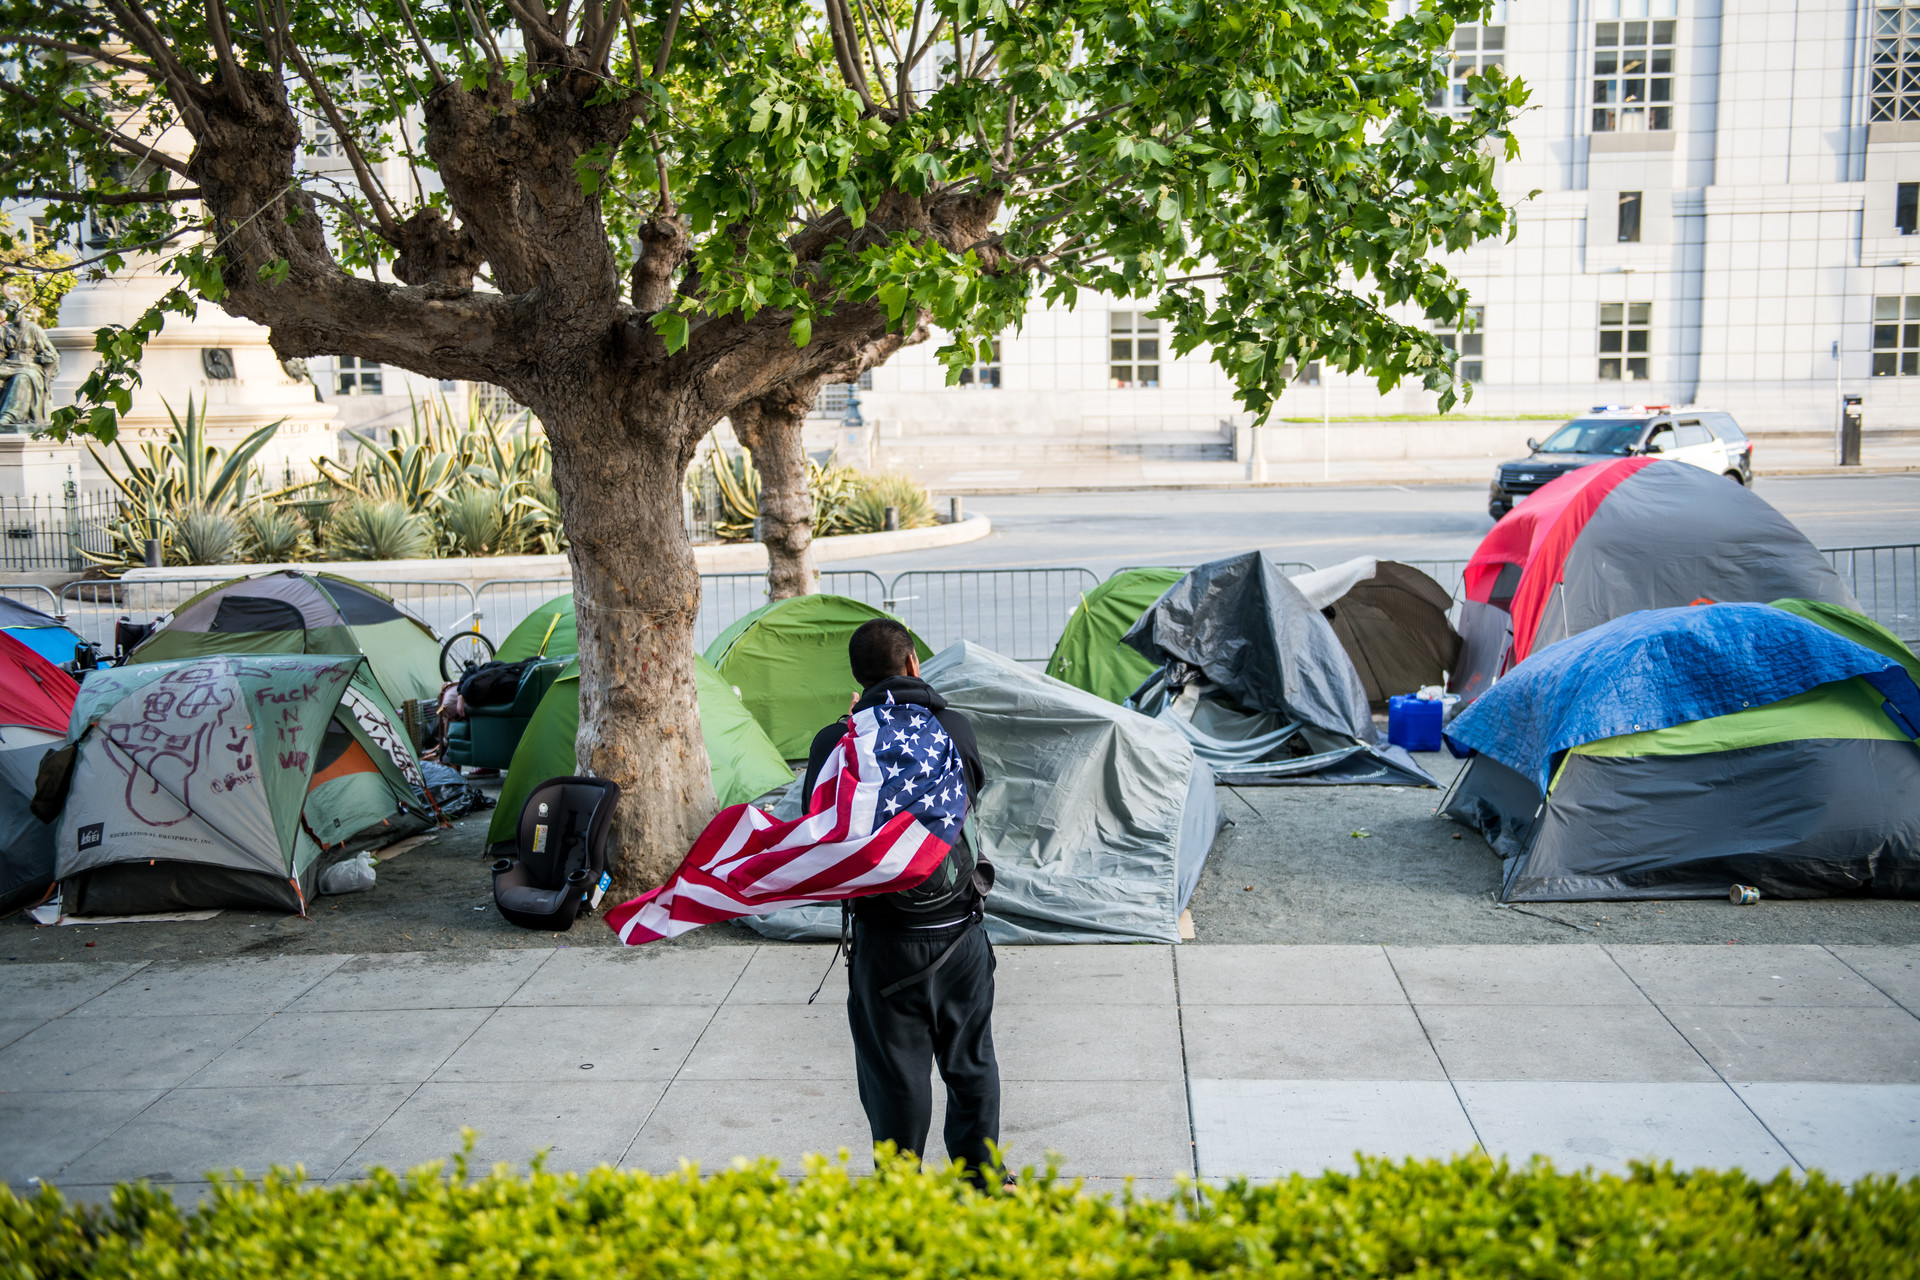 Tents line a gravel sidewalk off Fulton Street near City Hall on May 5, 2020. On Wednesday, city staffers started drawing out socially distant spaces with chalk on the street for the tents to stay.